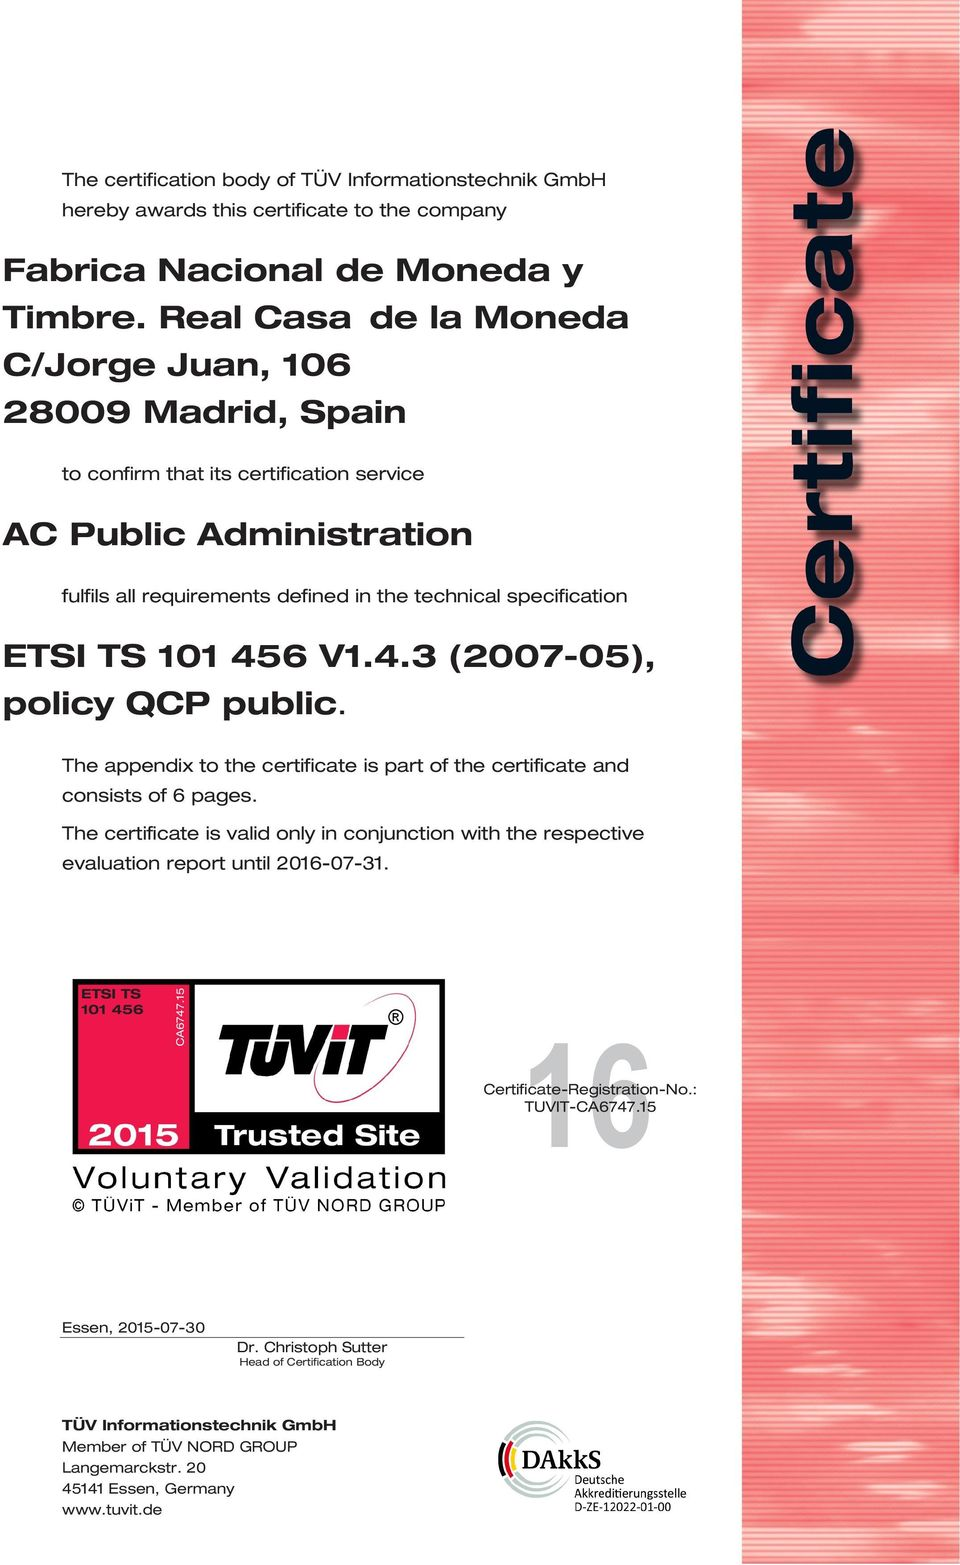 TS 101 456 V1.4.3 (2007-05), policy QCP public. The appendix to the certificate is part of the certificate and consists of 6 pages.